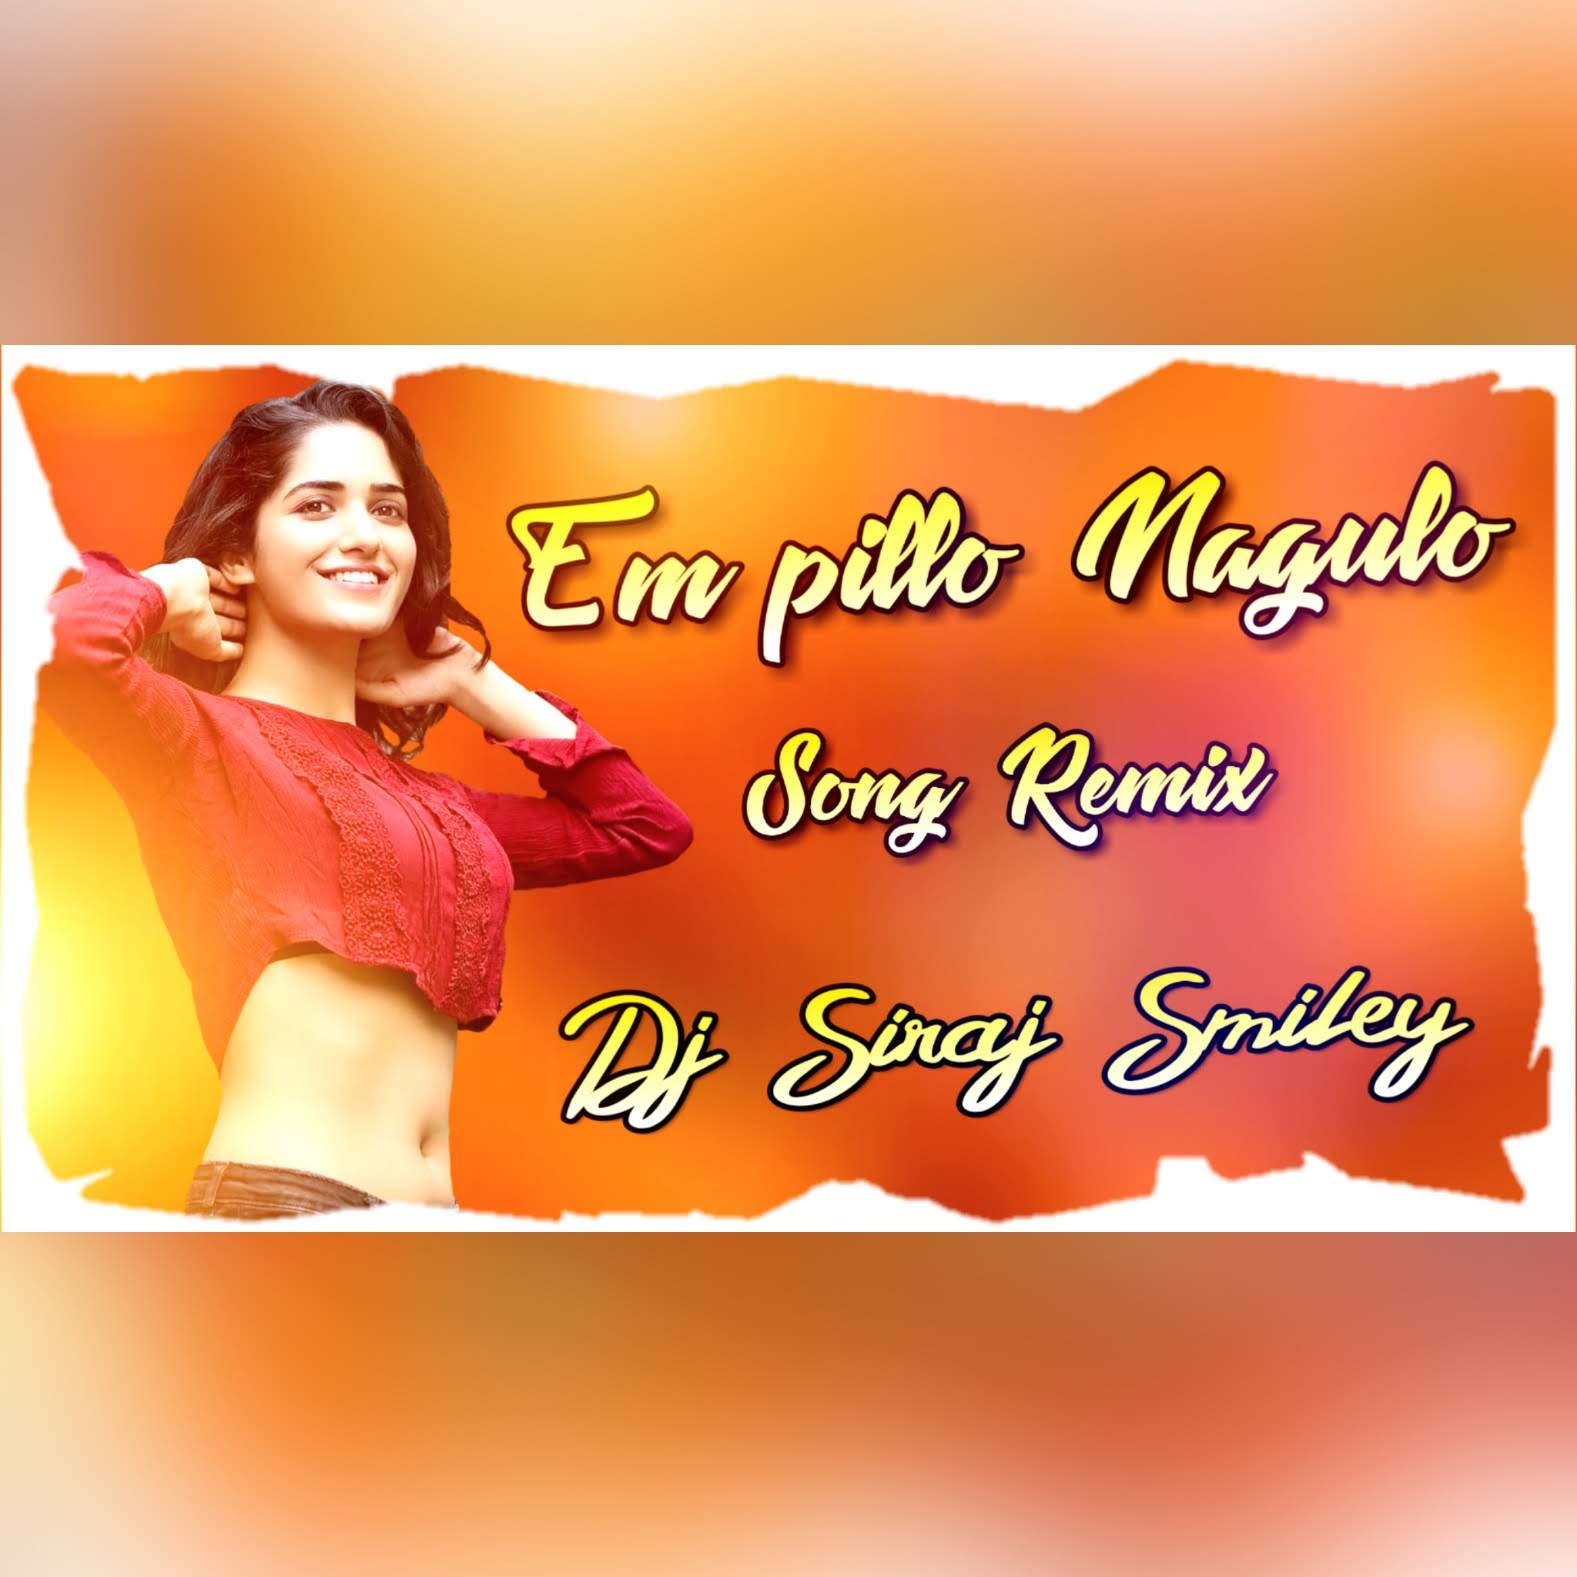 Telugu Dj Songs 2019 Free Download Mp3, New Dj Songs 2019 Telugu Free Download, New Dj Song 2019 Telugu Free Download Mp3, Telugu Private Dj Songs Free Download 2019, Telugu Dj Songs Download Naa Songs 2019 Free, 2019 Telugu Dj Remix Songs Free Download, Naa Songs Dj Remix Telugu 2019 Free Download, Dj Songs Telugu Download Mp3 2019 Free Naa, New Dj Song 2019 Telugu Free Download Naa Songs, Bathukamma Dj Songs In Telugu Mp3 Free Download 2019, Dj Songs In Telugu 2019 Free Download, Telugu Dj Songs Free Download Naa Songs 2019, Telugu New Dj Songs Free Download 2019, Dj Songs Telugu Download Mp3 2019 Free Naa Songs,Telugu Dj Songs Download 2019 Mp3, Telugu Dj Songs Download 2019, Telugu Dj Songs Download Naa Songs 2019, Telugu Dj Songs Download Hd, Telugu Dj Songs Download Videos, Telugu Dj Songs Download Mp3 Naa Songs, Telugu Dj Songs Download Naa Songs, Telugu Dj Songs Download App, Telugu Dj Songs Download All, Telugu Dj Songs Download Allu Arjun, Telugu Dj Songs Download A To Z, Telugu Dj Songs Download Audio 2018, Telugu Dj Songs Download All Mp3, Telugu Dj Songs Download Album, Telugu Dj Songs Download Audio 2019, Telugu Dj Songs Audio Download 2017, A-z Telugu Dj Songs Download, Telugu Dj Songs Download Mp3, Telugu Dj Songs Download Naa, Telugu Dj Songs Download 2018 Mp3 Naa, Telugu Dj Songs Download 2019 Mp3 Naa, Telugu Dj Songs Download By Naa Songs, Telugu Dj Songs Download Bestwap, Telugu Dj Songs Download Bestwap Cool, Telugu Dj Songs Download Bass, Telugu Dj Songs Download Bajrangi, Telugu Dj Songs Download Bhajan, Telugu Dj Songs Download Bonalu, Telugu Dj Songs Bathukamma Download, Telugu Dj Songs Bajrang Download, Telugu Dj Songs Download Full Bass, Dj Songs Download Telugu B, Telugu Dj Songs Download Com, Telugu Dj Songs Download Coming, Telugu Dj Songs Download Clubvitan, Telugu Dj Songs Download Com Audio, Telugu Dj Songs Download.co, Telugu Dj Songs Download Cheyadam Ela, Telugu Dj Songs Download Come Fast, Telugu Dj Songs Download Com Mp4, Telugu Dj Songs Come Download Mp3, Telugu Dj Songs Download Dj, Telugu Dj Songs Download Dj Srinu, Telugu Dj Songs Download Dj Remix, Telugu Dj Songs Download Doregama, Telugu Dj Songs Direct Download, Telugu Dj Songs Dance Download, Telugu New Dj Songs Download Djoffice.in, Telugu Dj Songs Download Emp3, Telugu Dj Songs Ela Download Cheyali, Ekadantaya Telugu Dj Songs Free Download, Telugu Extreme Dj Songs Download, Telugu English Dj Songs Download, Telugu Errajanda Dj Song Download, Extra Bass Telugu Dj Songs Download, Ek Baar Telugu Dj Songs Download, Telugu Dj Songs Download Folk, Telugu Dj Songs Download From Naa Songs, Telugu Dj Songs Download Fast, Telugu Dj Songs Download Free Mp3 Remix 2015, Telugu Dj Songs Download Full, Telugu Dj Songs Download Ganesh, Telugu Dj Songs Download Gaana, Telugu Dj Songs Download Guna Guna Mamidi, Telugu Dj Songs Download Google, Telugu Dj Songs Download Ganpati, Telugu Dj Songs God Download, Telugu Dj Songs Ganapathi Download, Telugu Dj Songs Download Please Google, Telugu Dj Song Gumpu Gumpu Download, Telugu Gouds Dj Songs Download, Telugu Dj Songs Download Hindi, Telugu Dj Songs Download Hd Vd9, Telugu Dj Songs Download High Quality, Telugu Dj Songs Download Hit, Telugu Dj Songs Hq Download, Telugu Dj Video Songs Download Hd, Telugu Dj Songs 2018 Download Hd, Telugu Dj Remix Songs Download Hd, Telugu Dj Songs Download In Naa Songs, Telugu Dj Songs Download In Jio Phone, Telugu Dj Songs Download In Mp3, Telugu Dj Songs Download In Sensongs, Telugu Dj Songs Download In Wap Won, Telugu Dj Songs Download In Ringmobi, Telugu Dj Songs Download In Dj Dhoom.co.in, Telugu Dj Songs Download In Remix, Telugu Dj Songs Download In Audio, Telugu Dj Songs Download Jattmate, Telugu Dj Songs Download Janapada, Telugu Dj Songs Download Janapadalu, Telugu Dj Songs Jukebox Download, Jayam Telugu Dj Songs Download, Telugu Janapada Dj Songs Download Mp3, Telugu Janapadalu Dj Songs Download Mp3, Telugu Jbl Dj Songs Download, Telugu Dj Jatara Songs Download, Dj Telugu Dj Songs Download, Dj Telugu Dj Songs Download Naa Songs, New Dj Telugu Dj Songs Download, Dj Raju Telugu Dj Songs Download, Dj Songs Download Telugu Dj Office, Dj Remix 2018 Dj Telugu Songs Download, Dj Rami Patel Telugu Dj Songs Download, Dj Remix Telugu Dj Songs Download, Dj Video Songs Telugu Download Dj, Telugu Dj Songs Download Karo, Telugu Dj Songs Download Kannada, Telugu Dj Songs Download Dj King, Dj Telugu Songs 320kbps Download, Telugu Kolatam Dj Songs Download, Kgf Telugu Dj Songs Download, Telugu Kotha Dj Songs Download, Katamarayudu Telugu Dj Songs Download, Telugu Dj Kiran Songs Download, Kota Telugu Dj Songs Download, Telugu Dj Songs Download Link, Telugu Dj Songs Download Latest, Telugu Dj Songs Download Love, Telugu Dj Songs Download Livmp3, Telugu Dj Songs Download List, Telugu Dj Songs Download Livmp3 Xyz, Telugu Dj Songs Download Loadmp4, Telugu Dj Songs Latest Download Mp3, Telugu Dj Songs Download Wapwon Live, Telugu Dj Remix Songs Download Latest, Telugu Dj Songs Download Mp3 2018, Telugu Dj Songs Download Mp3 2019, Telugu Dj Songs Download Mp3 Naa Songs 2019, Telugu Dj Songs Download Mp3 Free, Telugu Dj Songs Download Mp3 Audio, Telugu Dj Songs Download Naa Songs 2018 Mp3 Download, Telugu Dj Songs Download Naa Songs Remix, Telugu Dj Songs Download Naa Songs New, Telugu Dj Songs Download Naa Songs 2019 Audio, Telugu Dj Songs Download New 2019, Telugu Dj Songs Download Naa Songs 2018 Mp4, Telugu Dj Songs Download Naa Songs 2017, New Telugu Dj Songs Download, New Telugu Dj Songs Download 2019, New Telugu Dj Songs Download Naa Songs, New Telugu Dj Songs Download Mp3 2019, New Telugu Dj Songs Download Mp4, New Telugu Dj Songs Download Free, New Telugu Dj Songs Download 2018, New Telugu Dj Songs Download 2017, New Telugu Dj Songs Download 2018 Mp3, Telugu Dj Songs Download Ormp3, Telugu Dj Songs Download Only Audio, Telugu Dj Songs Download Old, Telugu Dj Songs Download Ormp3xyz, Telugu Dj Songs Download Online, Telugu Dj Songs Download Only, Telugu Dj Songs Download Open, Telugu Dj Songs Original Download, Telugu Dj Songs On Download, O Nirmala Telugu Dj Song Download, O Pillo Mounika Telugu Dj Songs Download, O Pilla Mounika Telugu Dj Songs Download, O Pillo Mouniko Telugu Dj Song Download, O Pilla Monika Telugu Dj Song Download, O Pilla Mounika Telugu Dj Song Download Mp3, Telugu Dj Songs Download Private Songs, Telugu Dj Songs Download Please Come, Telugu Dj Songs Download Pagal, Telugu Dj Songs Download Pravet, Telugu Dj Songs Download Private Mp3, Telugu Dj Songs Download Play,